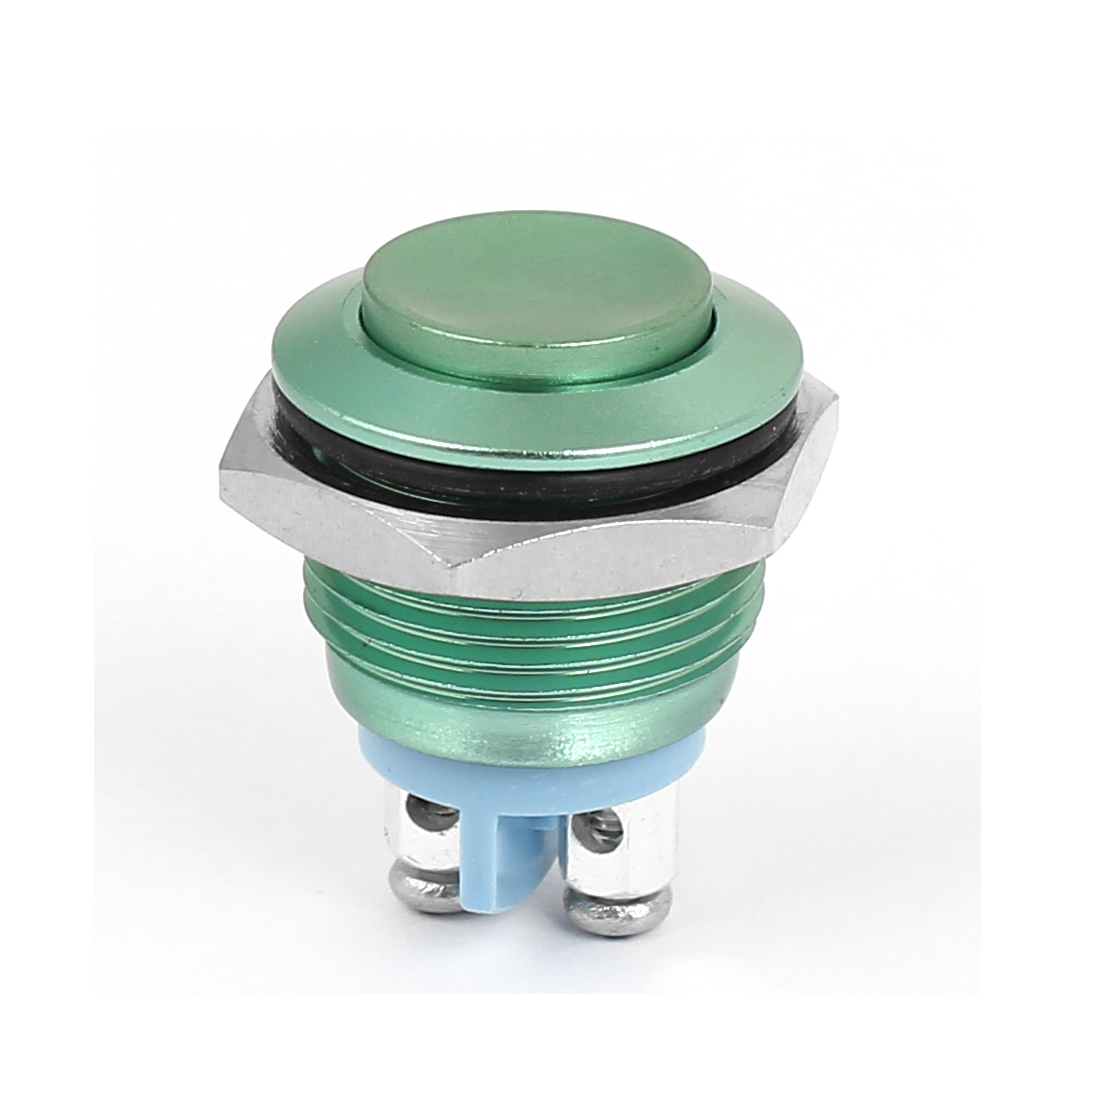 M16 Metal Pushbutton Switch Panel Mount Momentary Type Green Raised Head